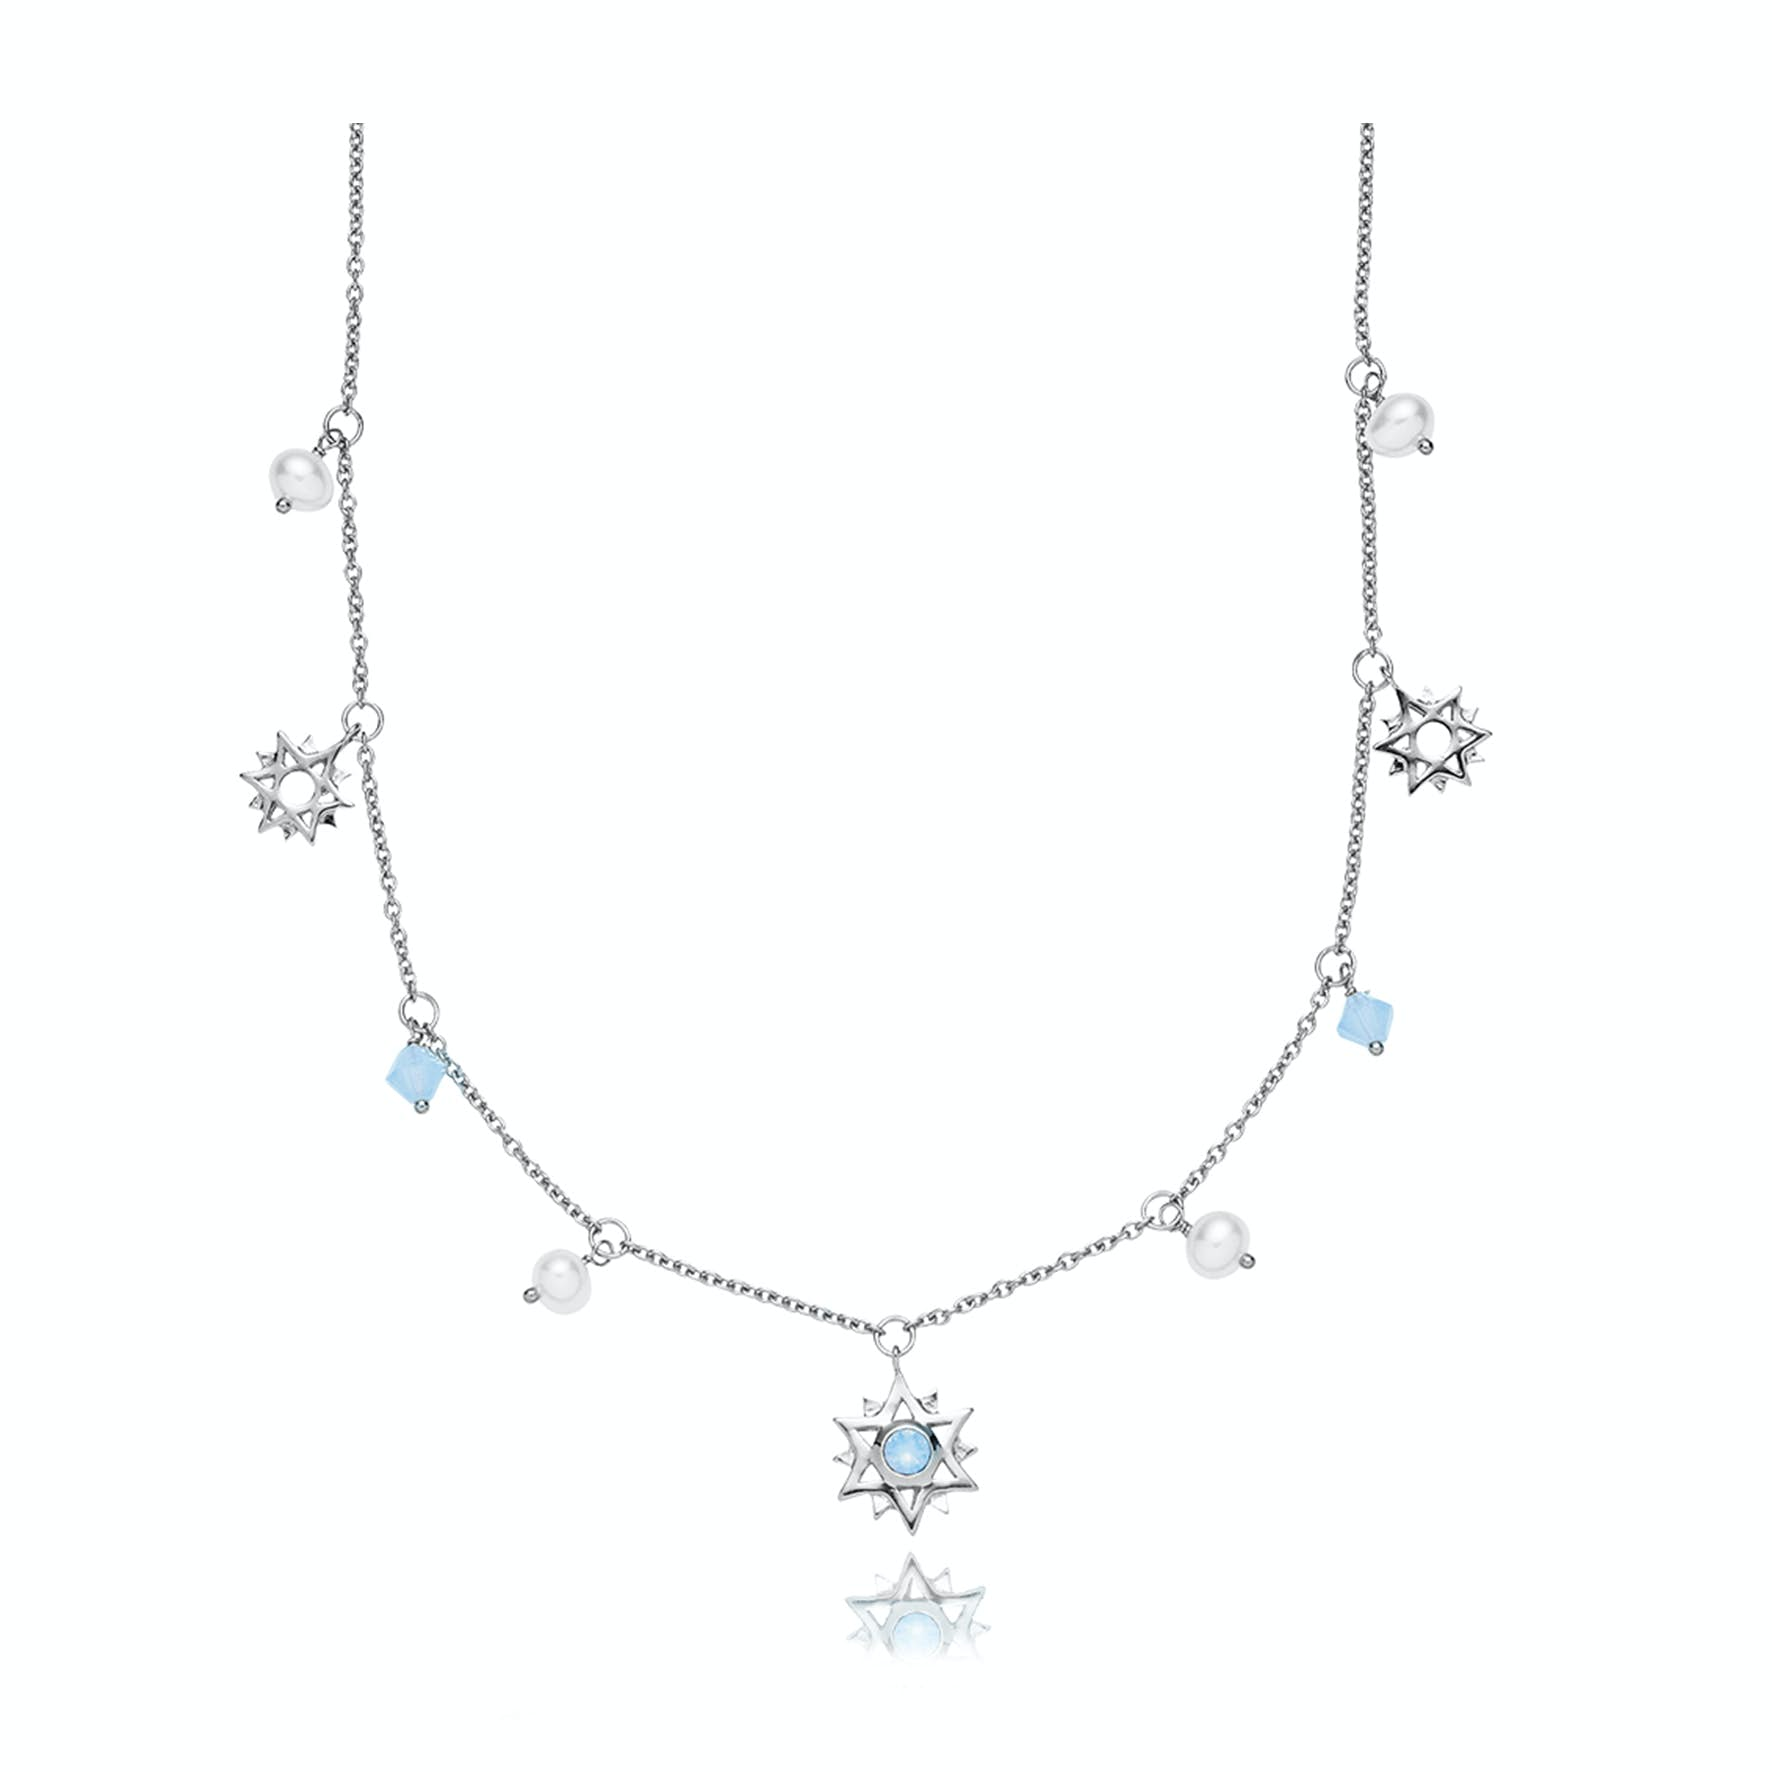 Olivia by Sistie Necklace from Sistie in Silver Sterling 925